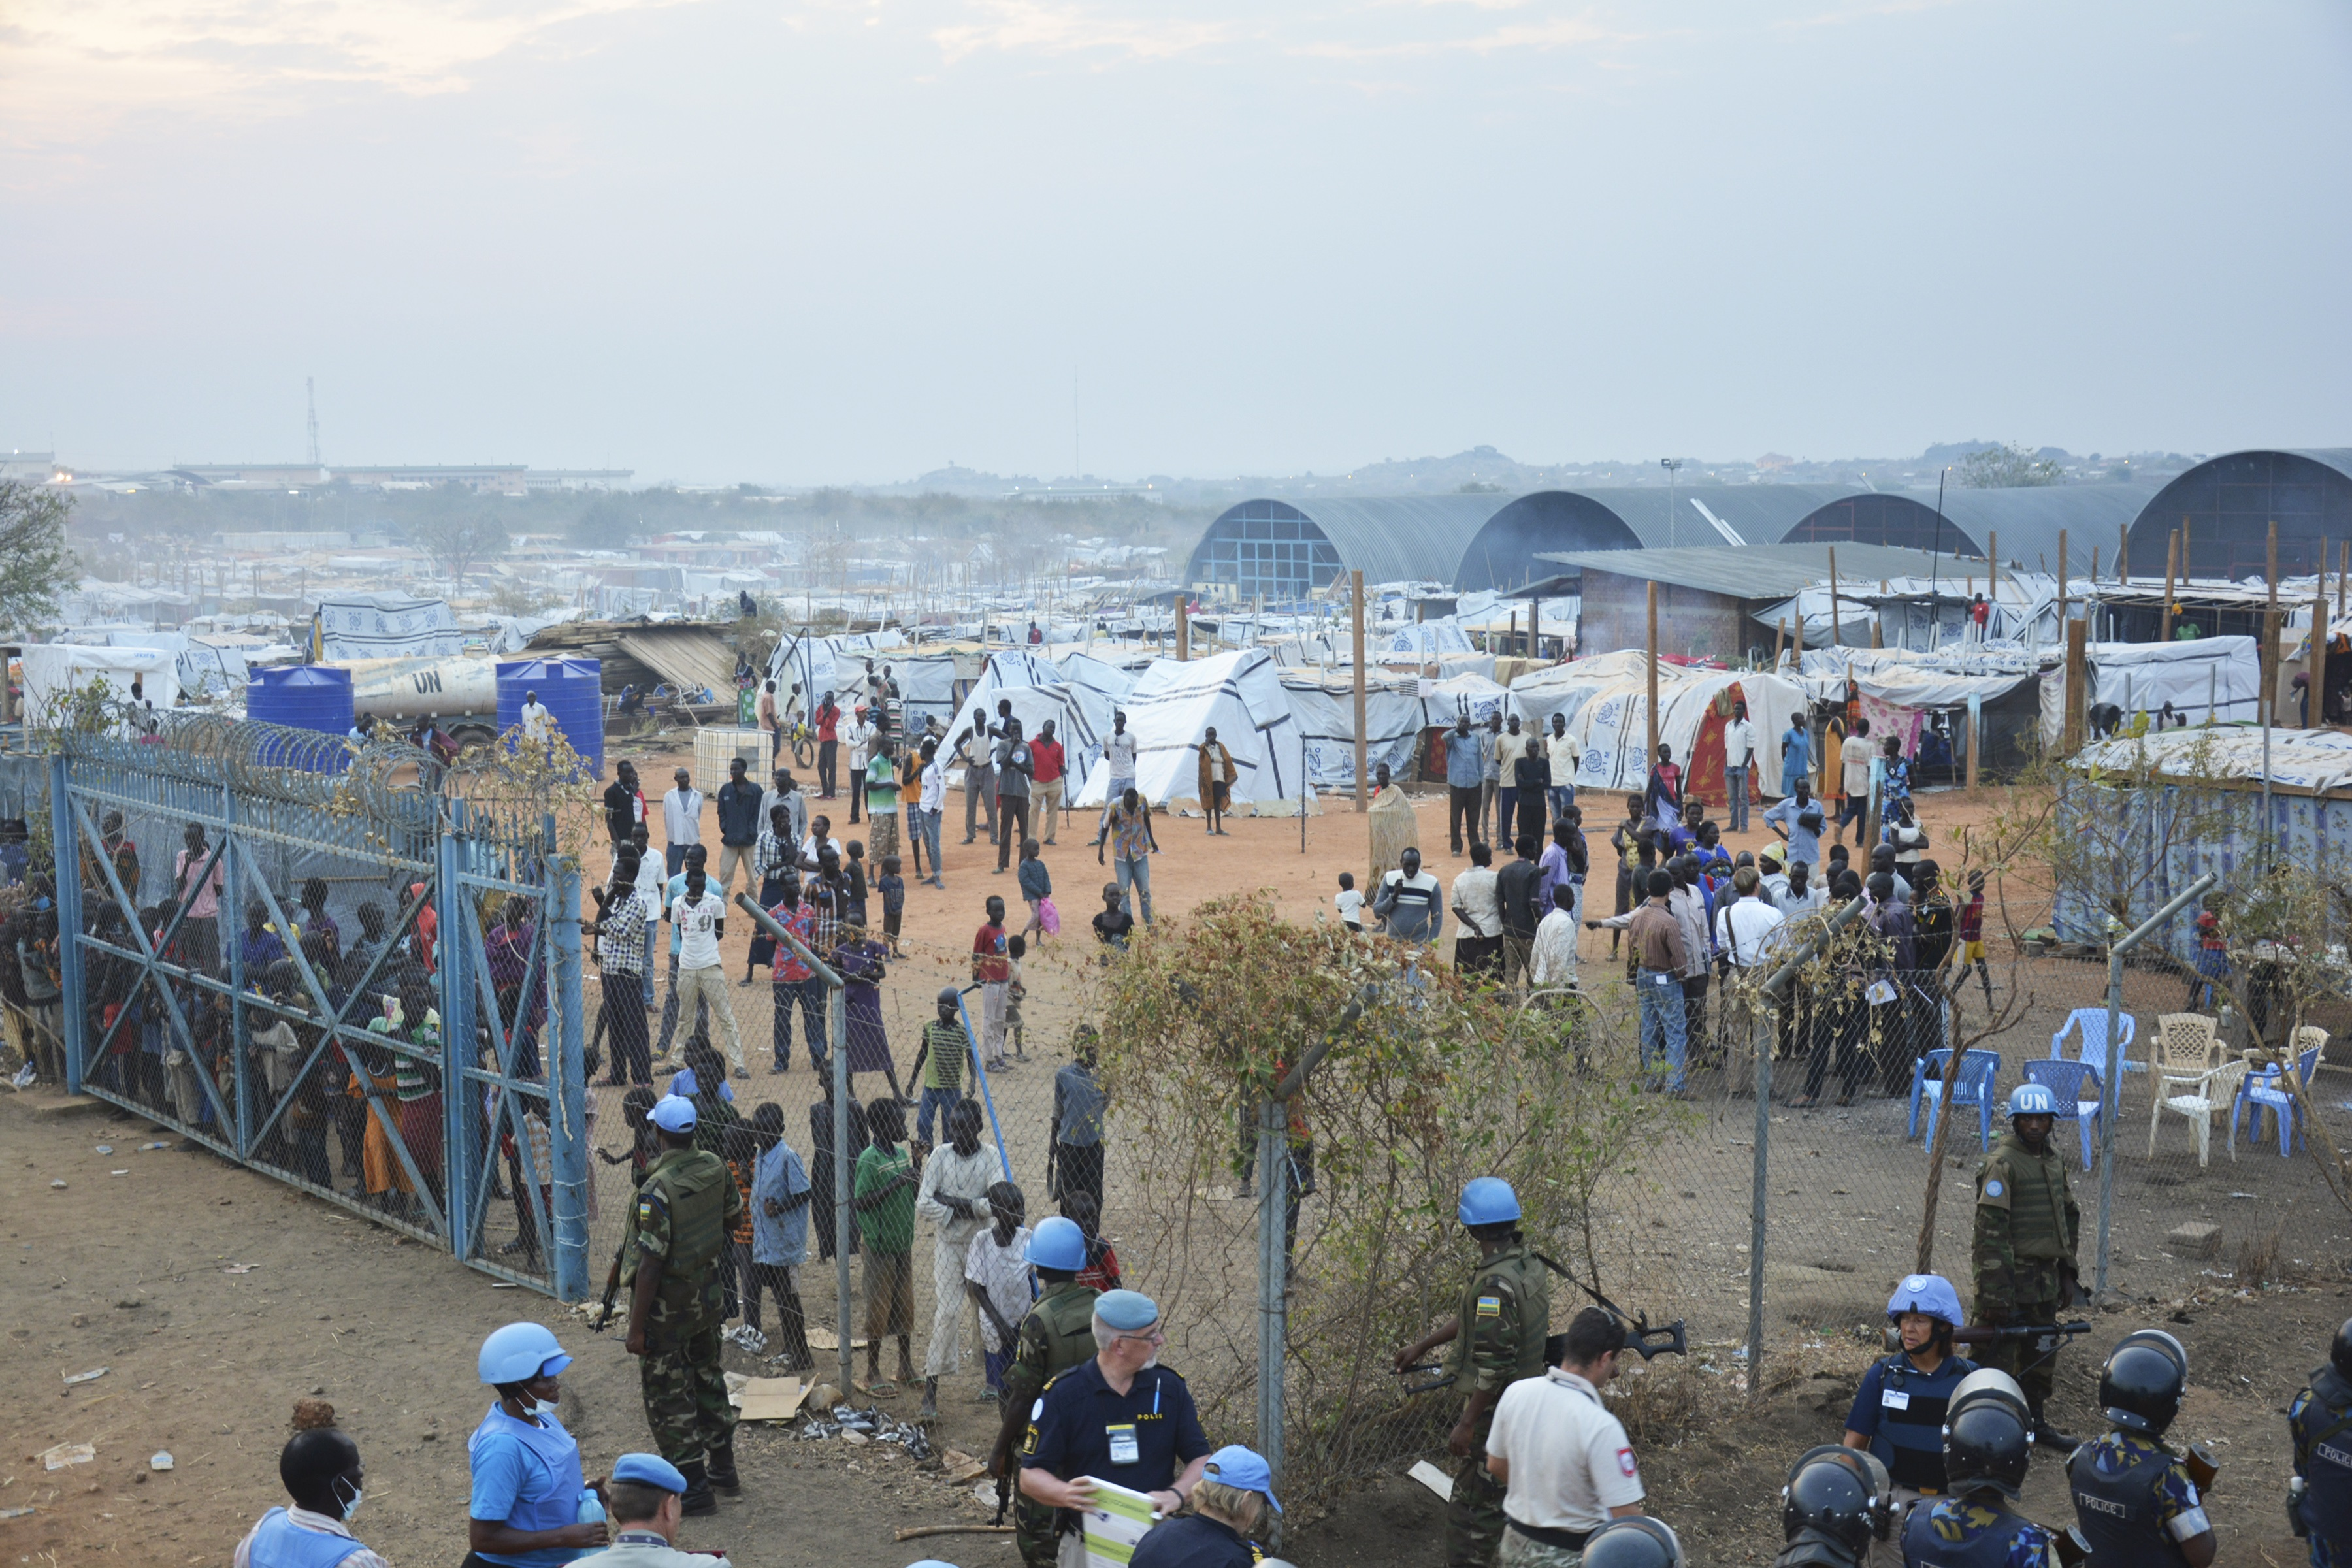 UN House IDP PoC camp in Juba